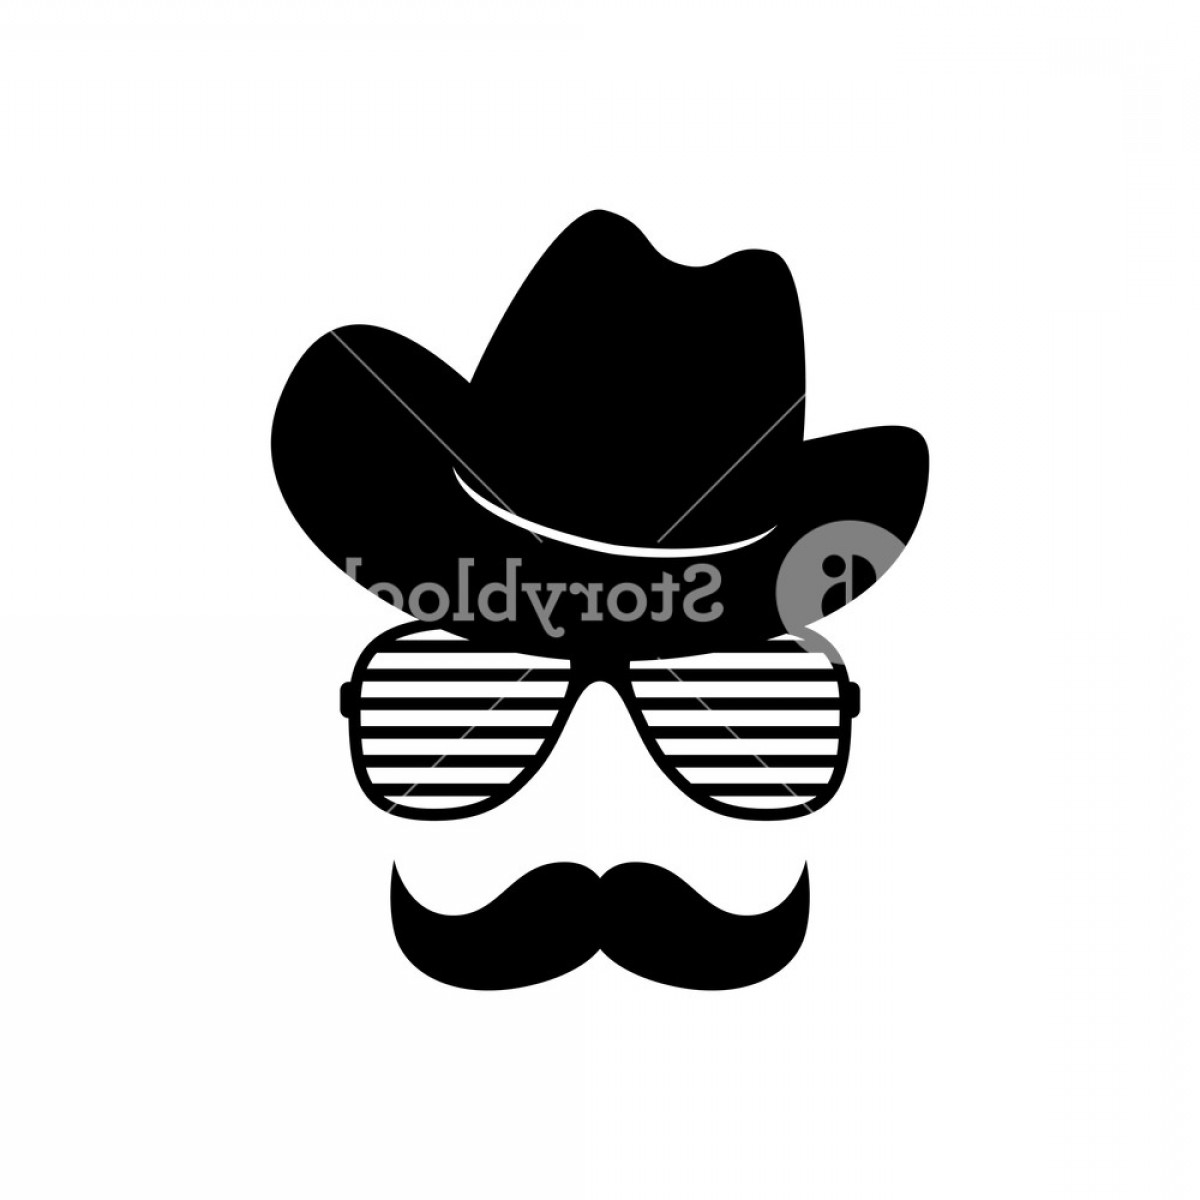 Mustache Face Vector: Man Face With Glasses Mustache And Cowboy Hat Photo Props Cowboy Vector Illustration Rdlohdvtlmjdifkfyt